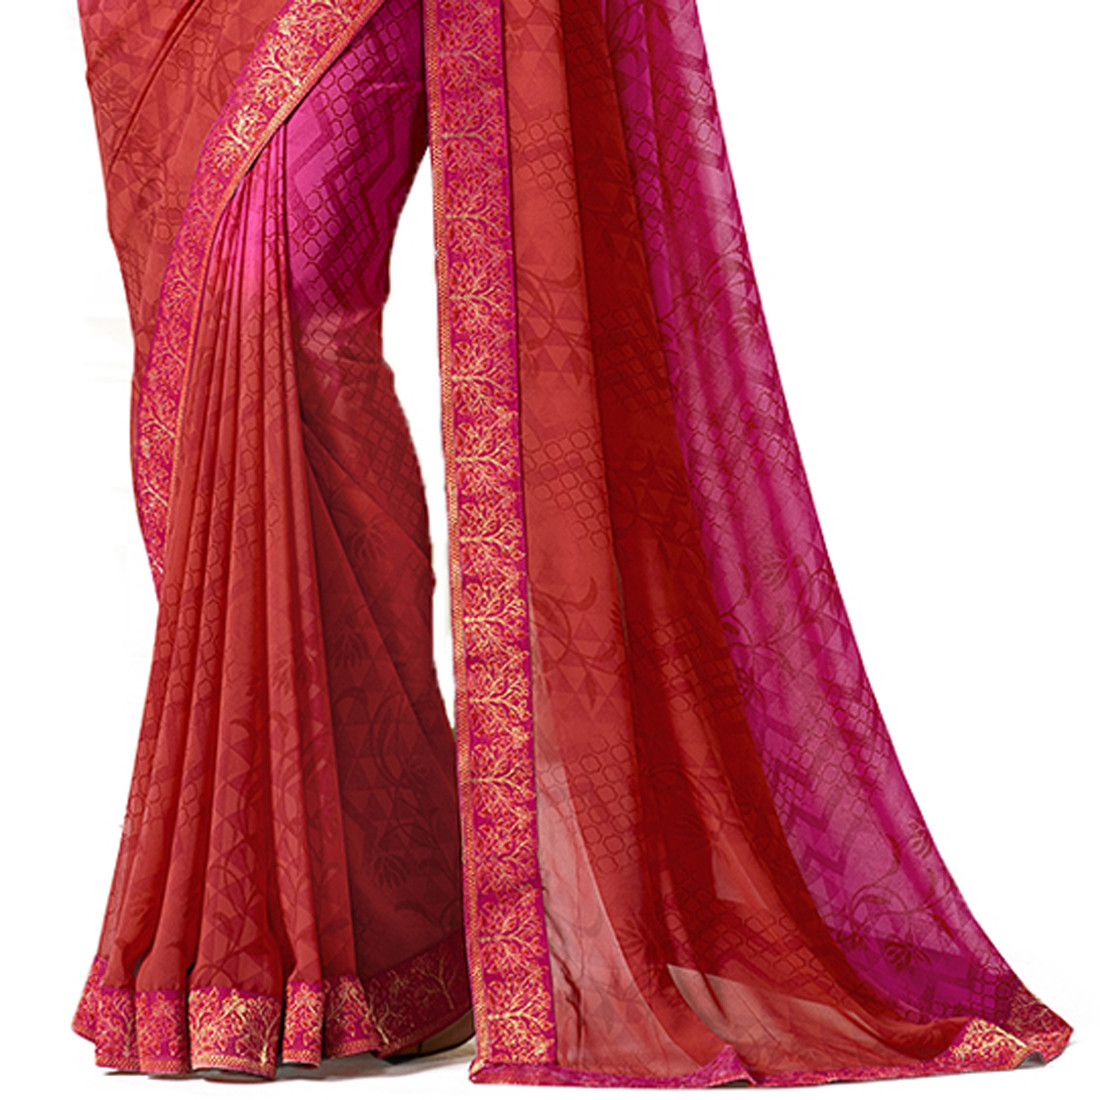 Amazing Georgette Unstitch Blouse And Saree